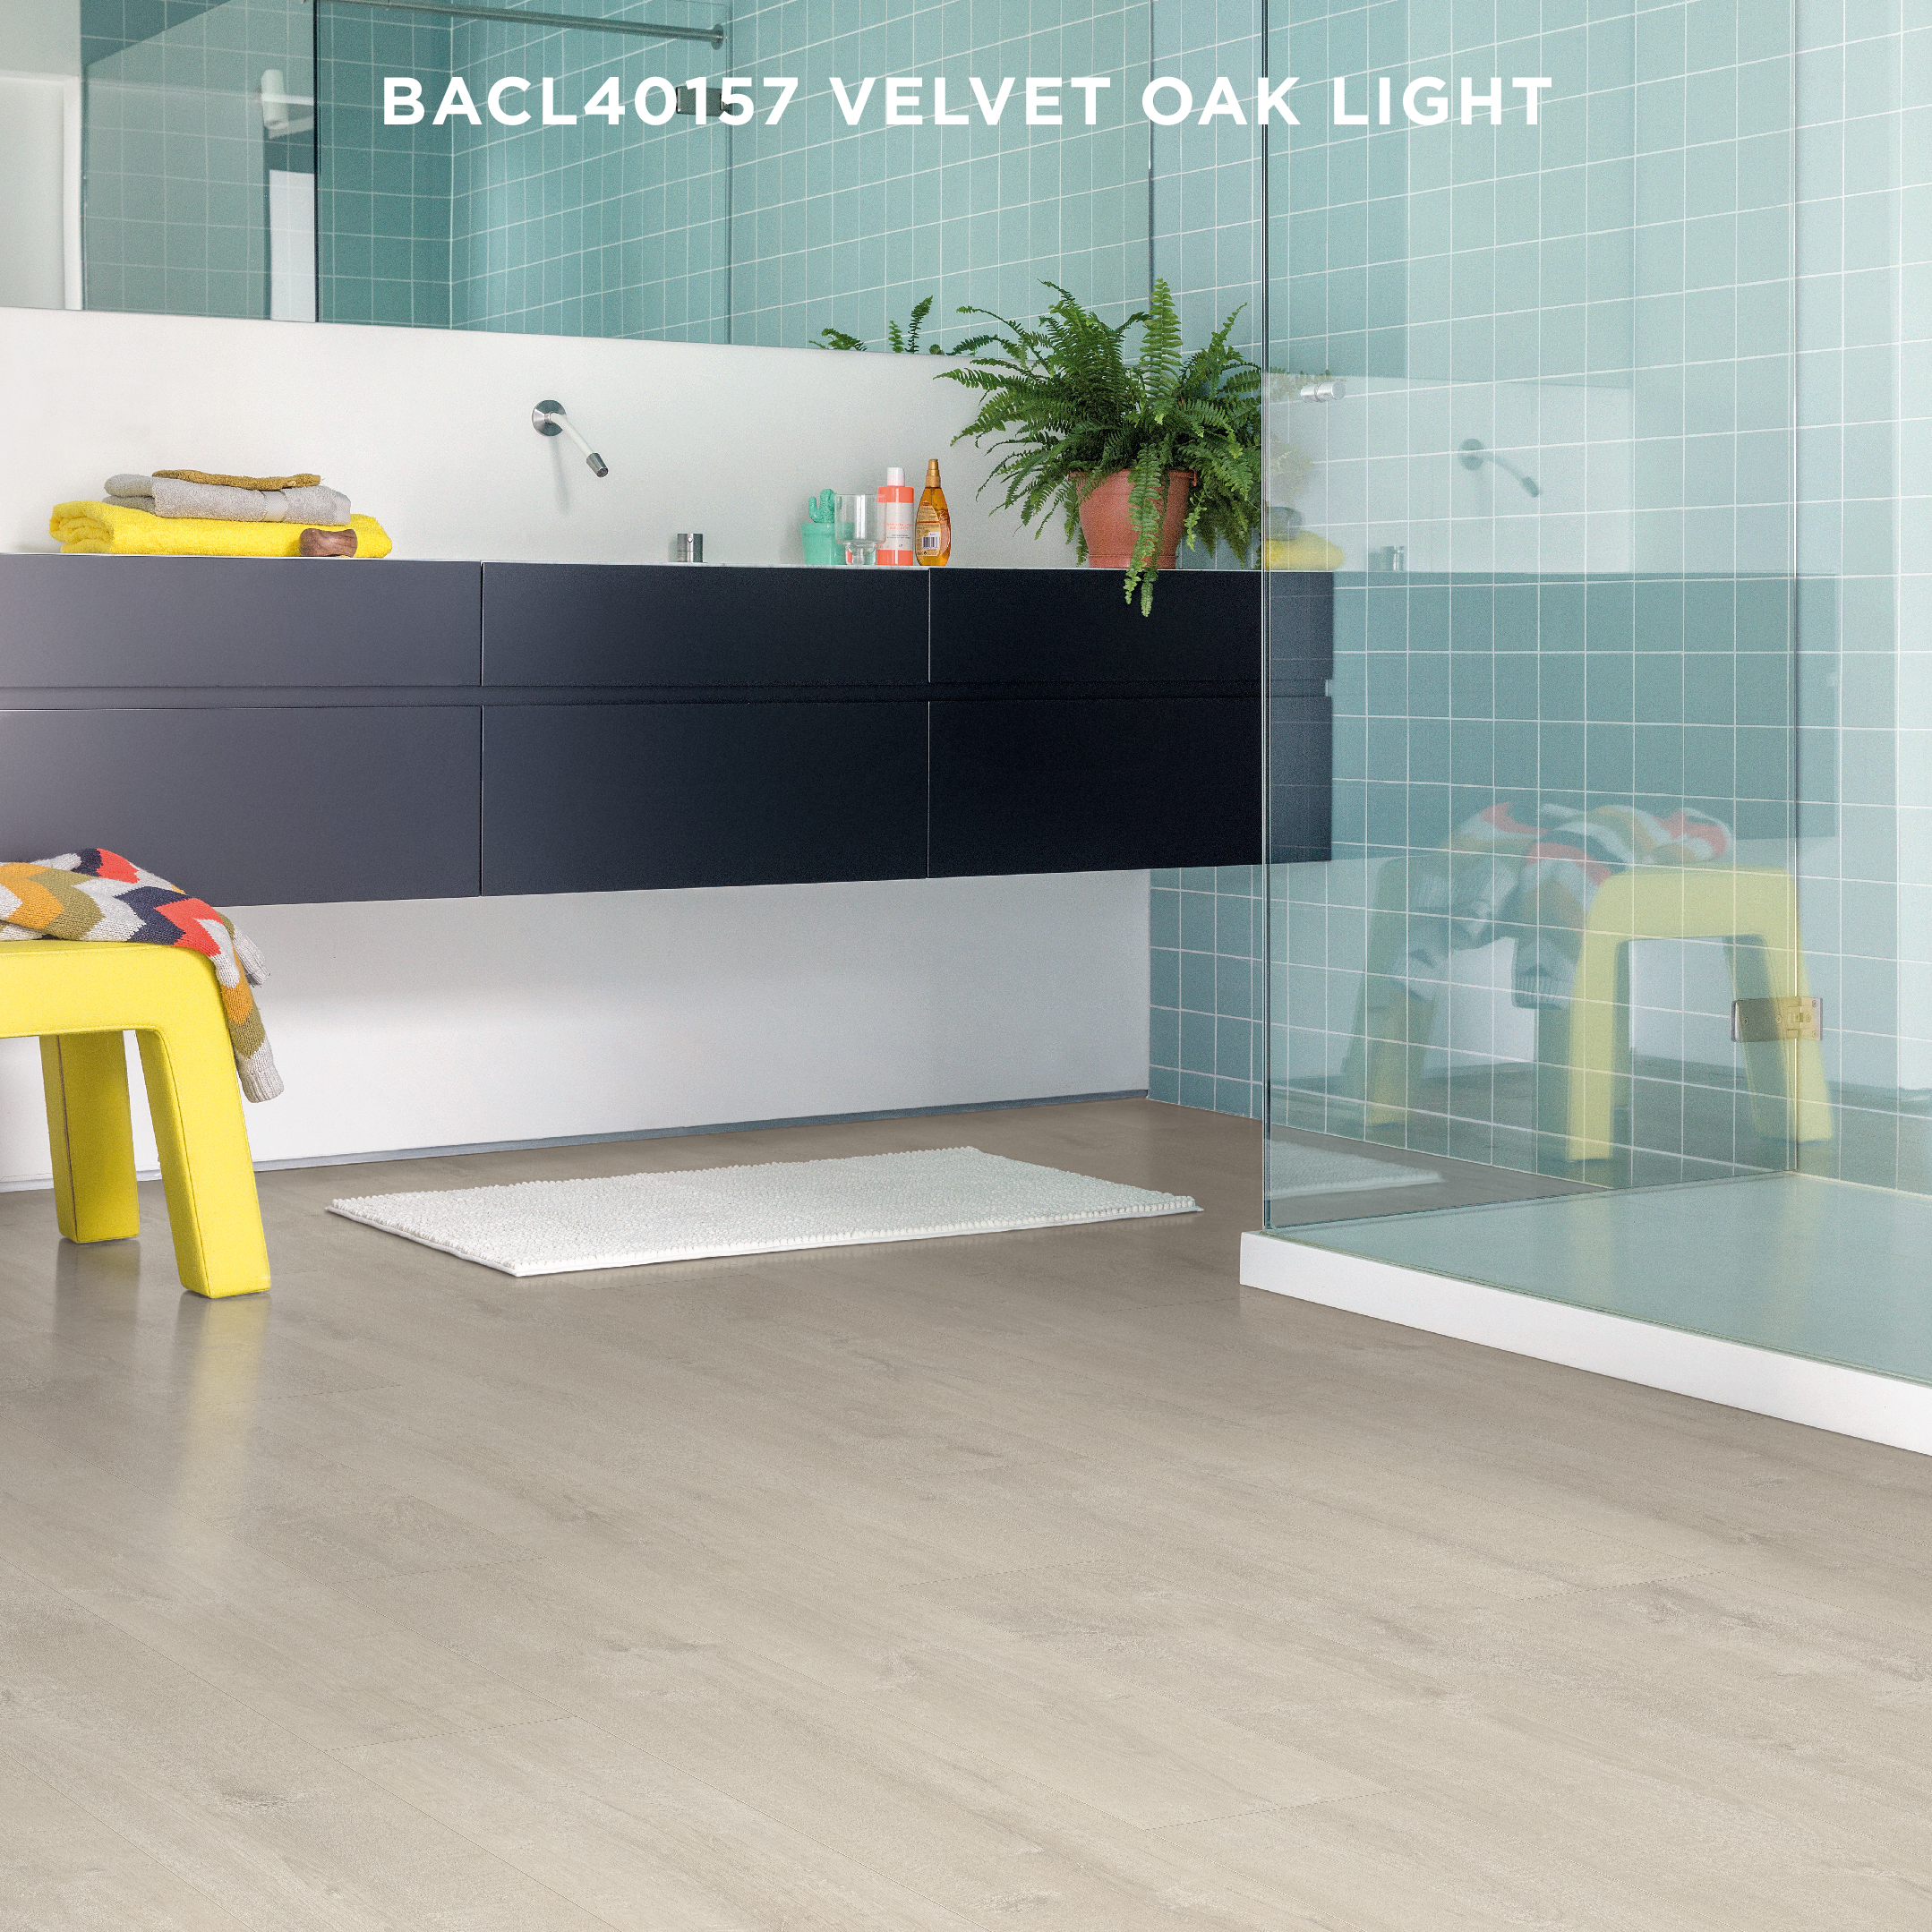 BACL40157 VELVET OAK LIGHT (New)